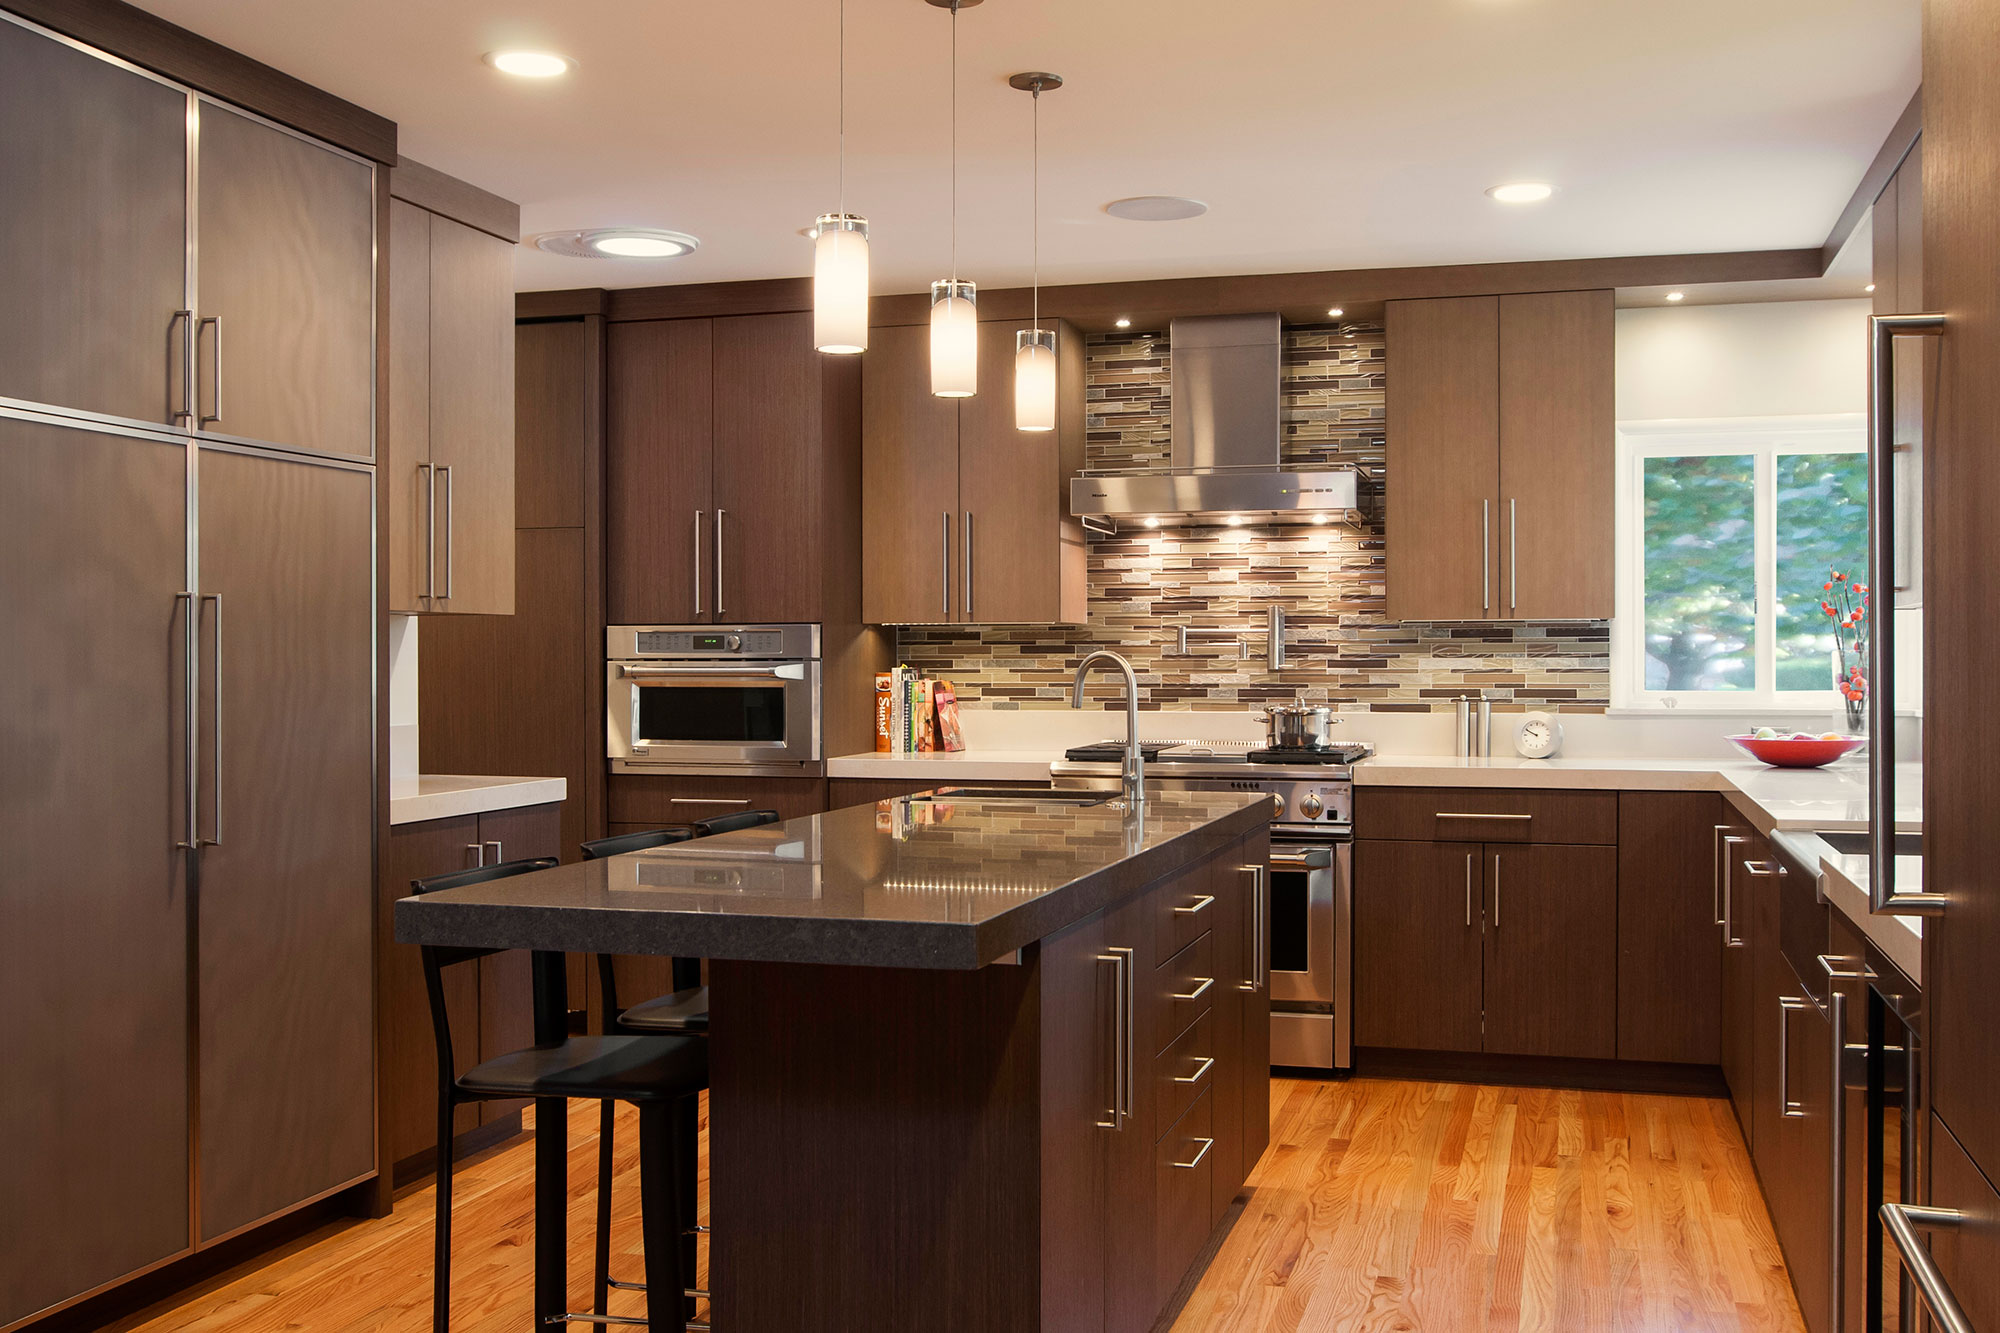 Remodelwest remodeling project galleries saratoga How to redesign your kitchen